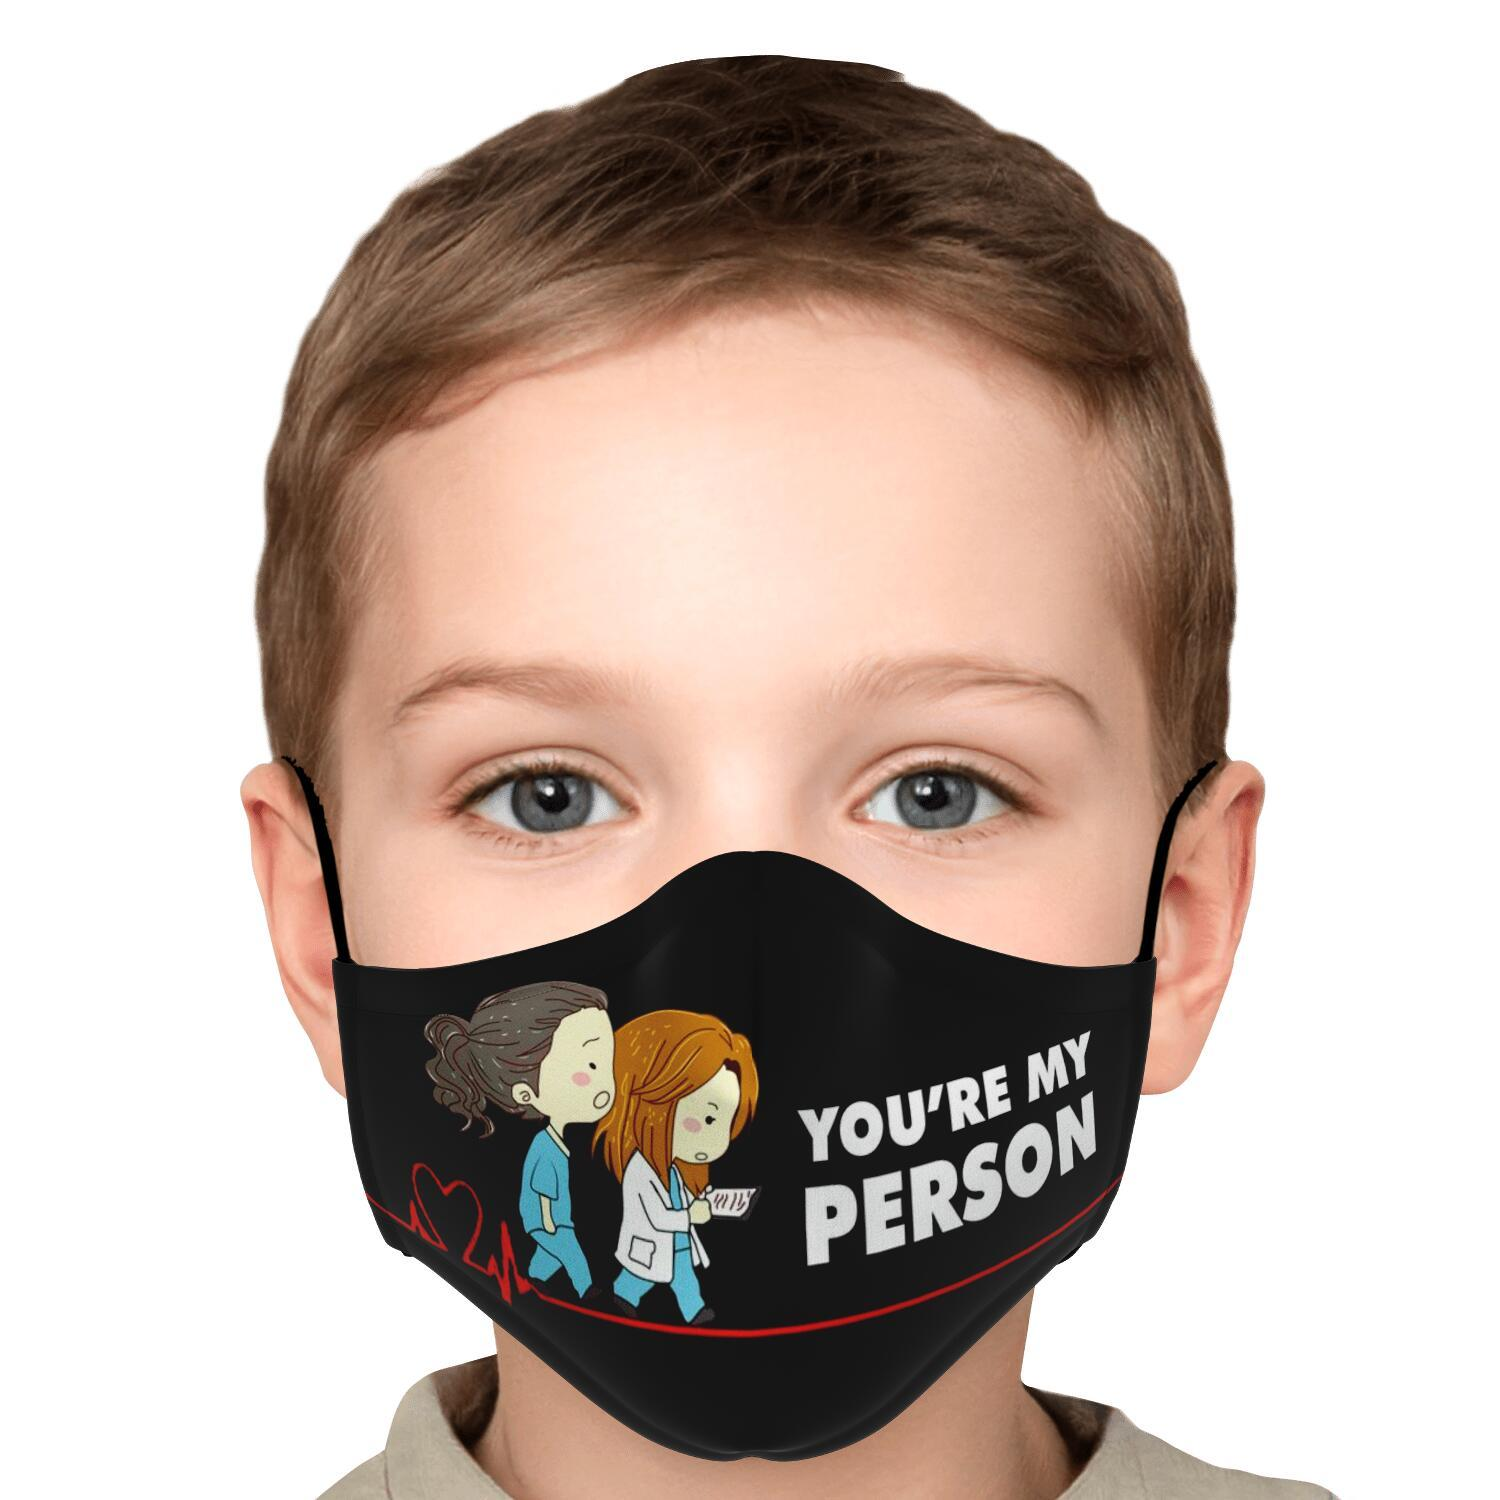 You're My Person Grey's Anatomy Face Mask 5